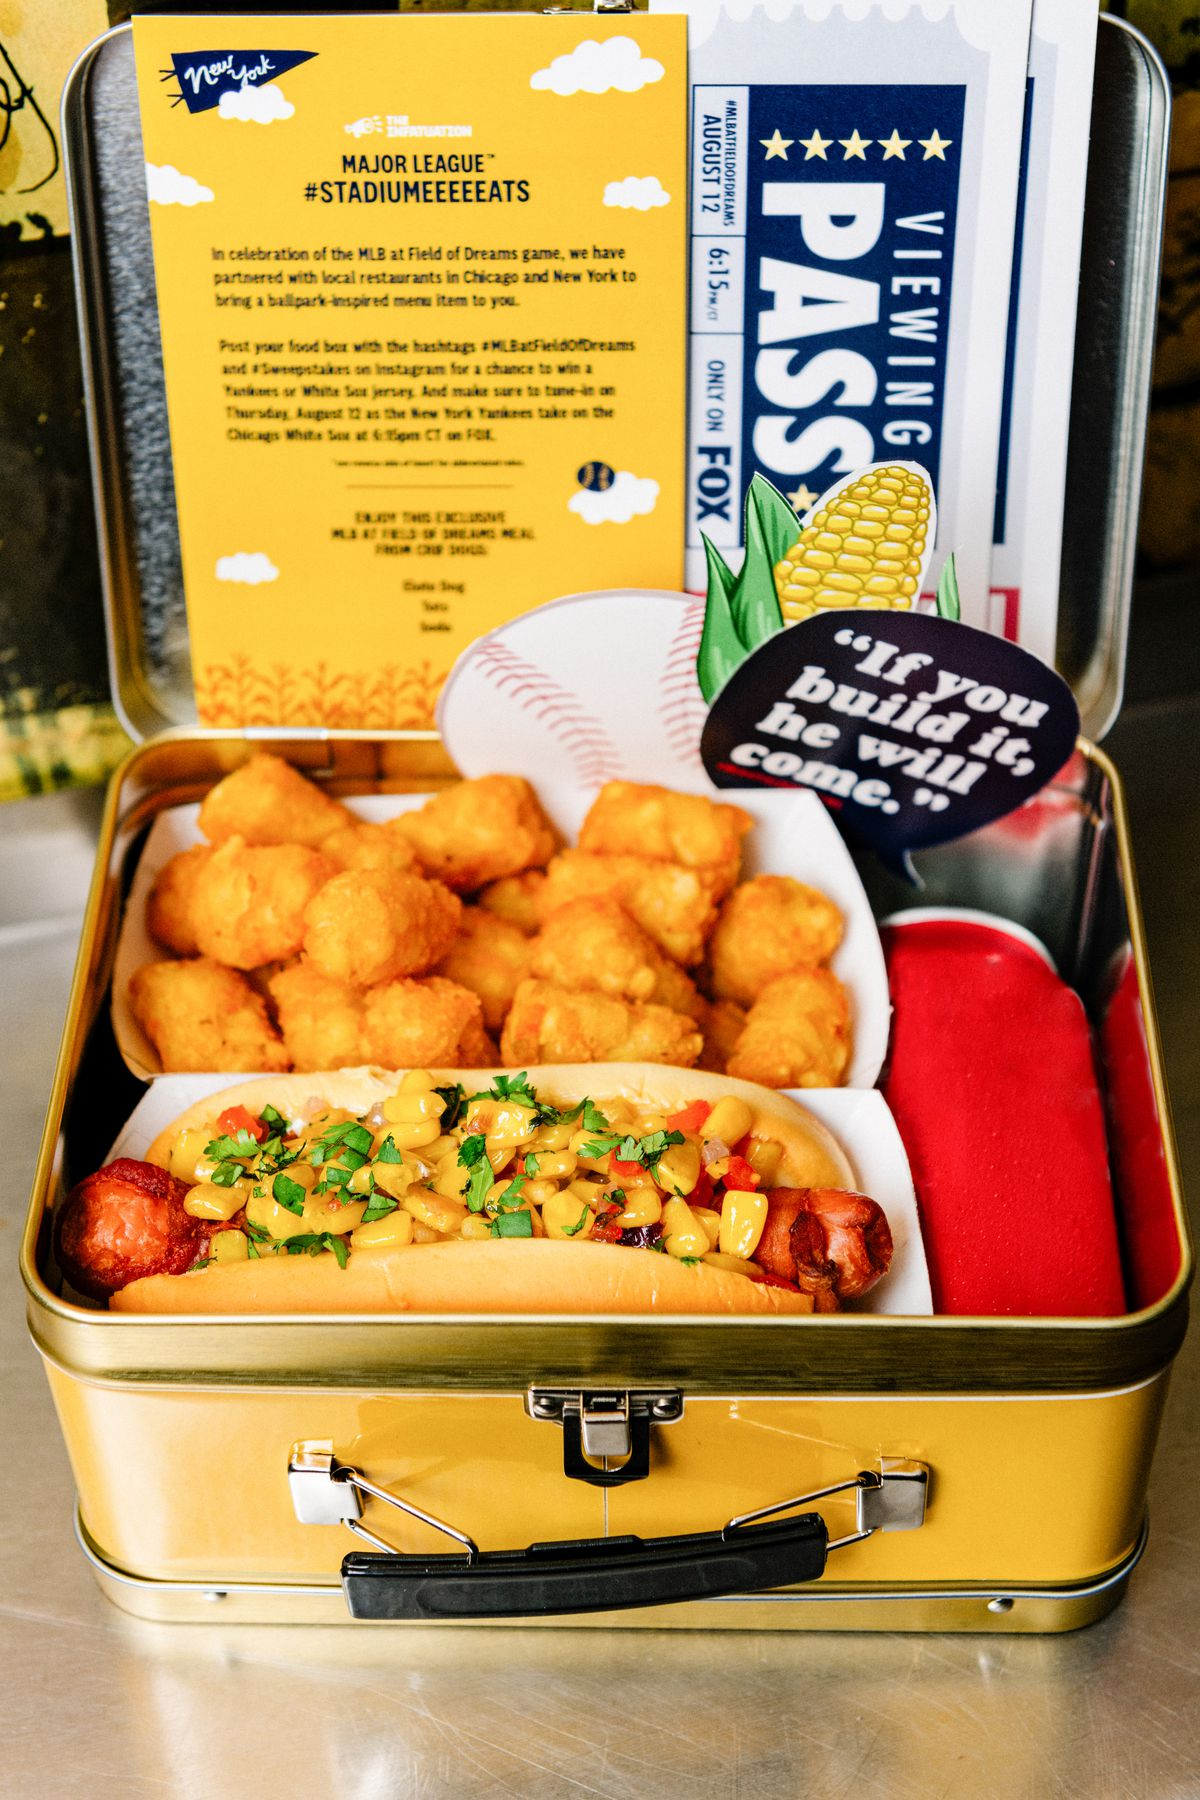 A lunch box will a hot dog, tater tots, and stickers.